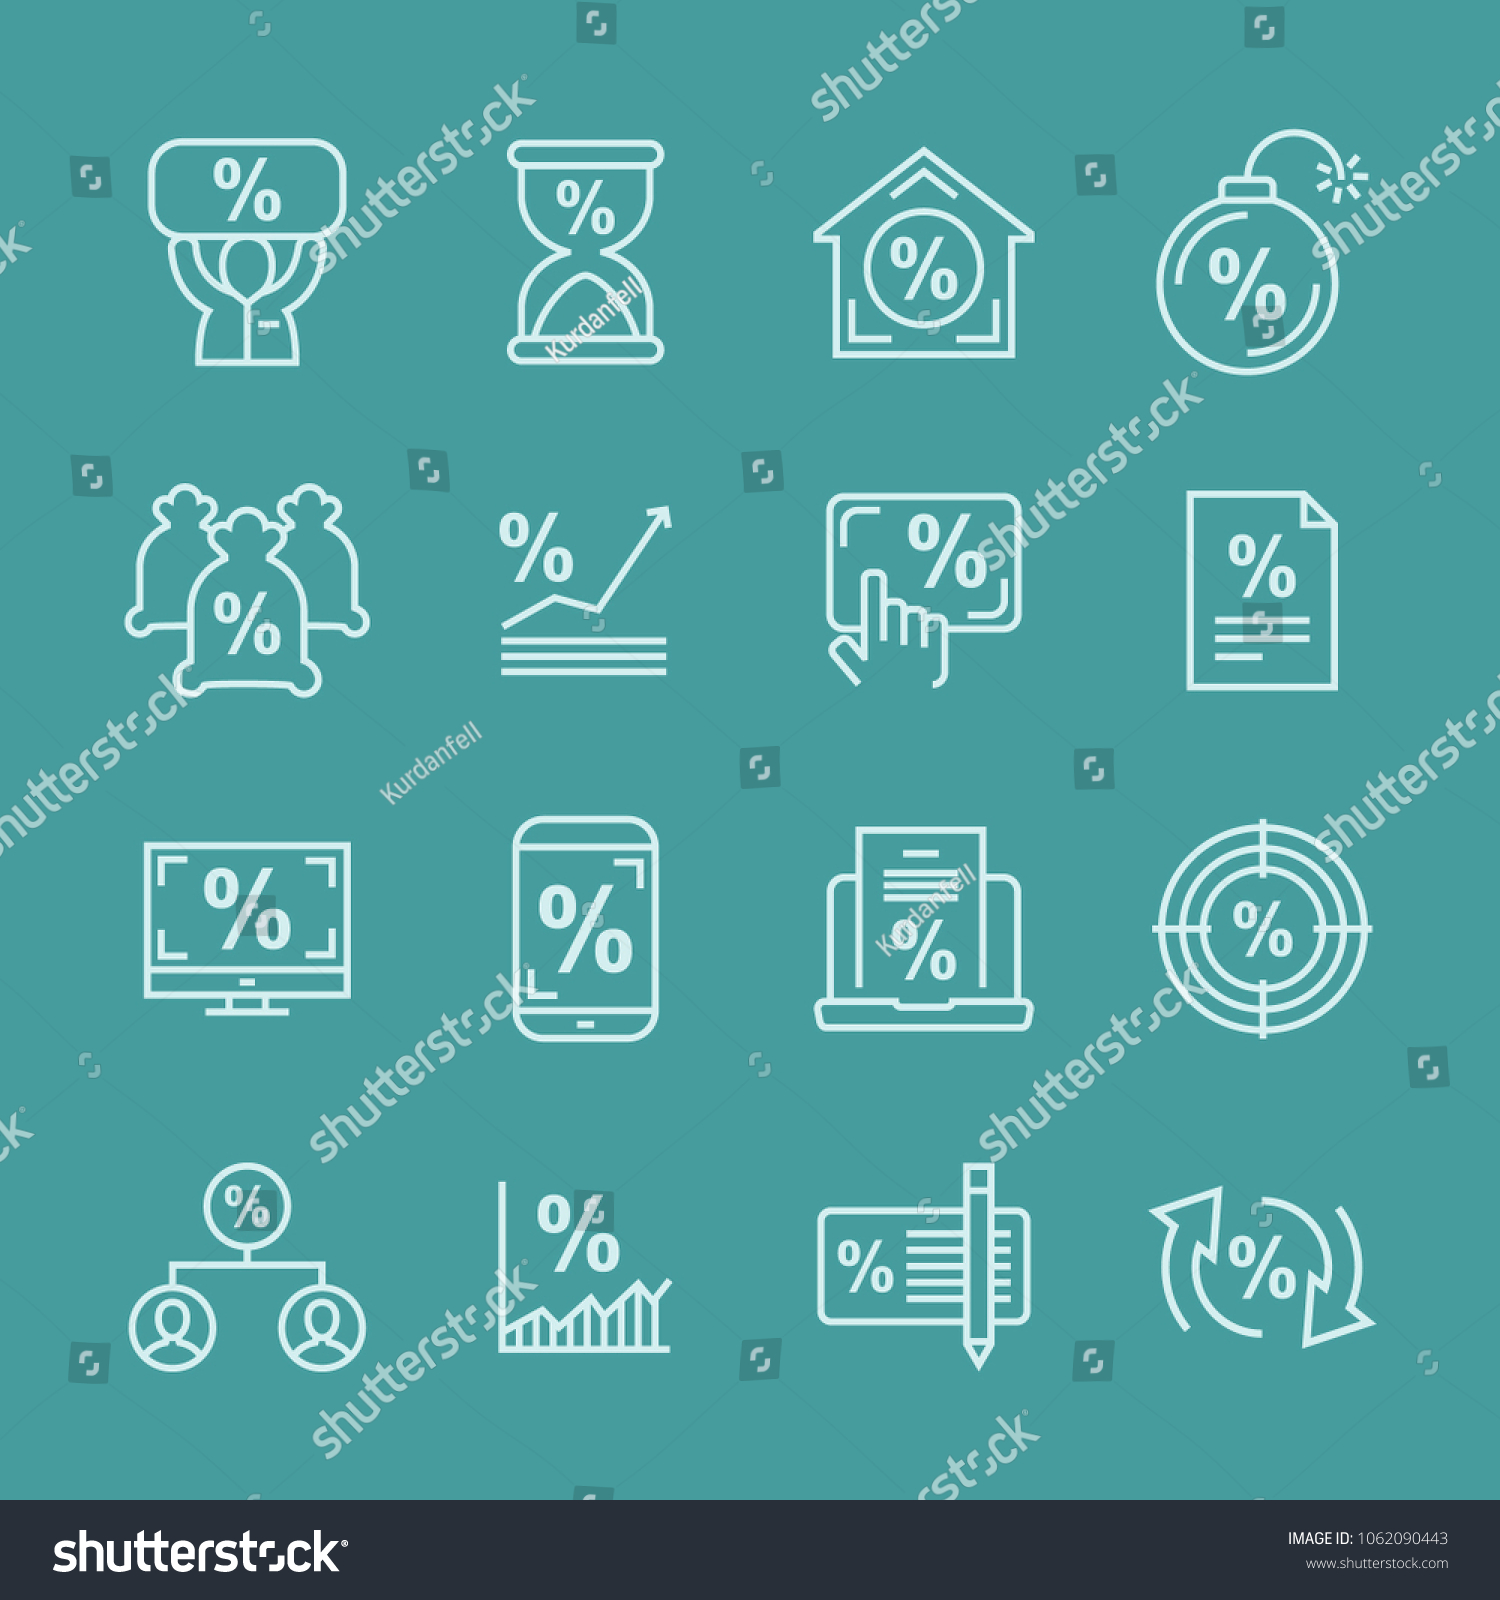 Deposit Profit Business Income Minimal Thin Stock Vector Royalty Simple Schematic Collection And Line Web Icon Set Outline Icons